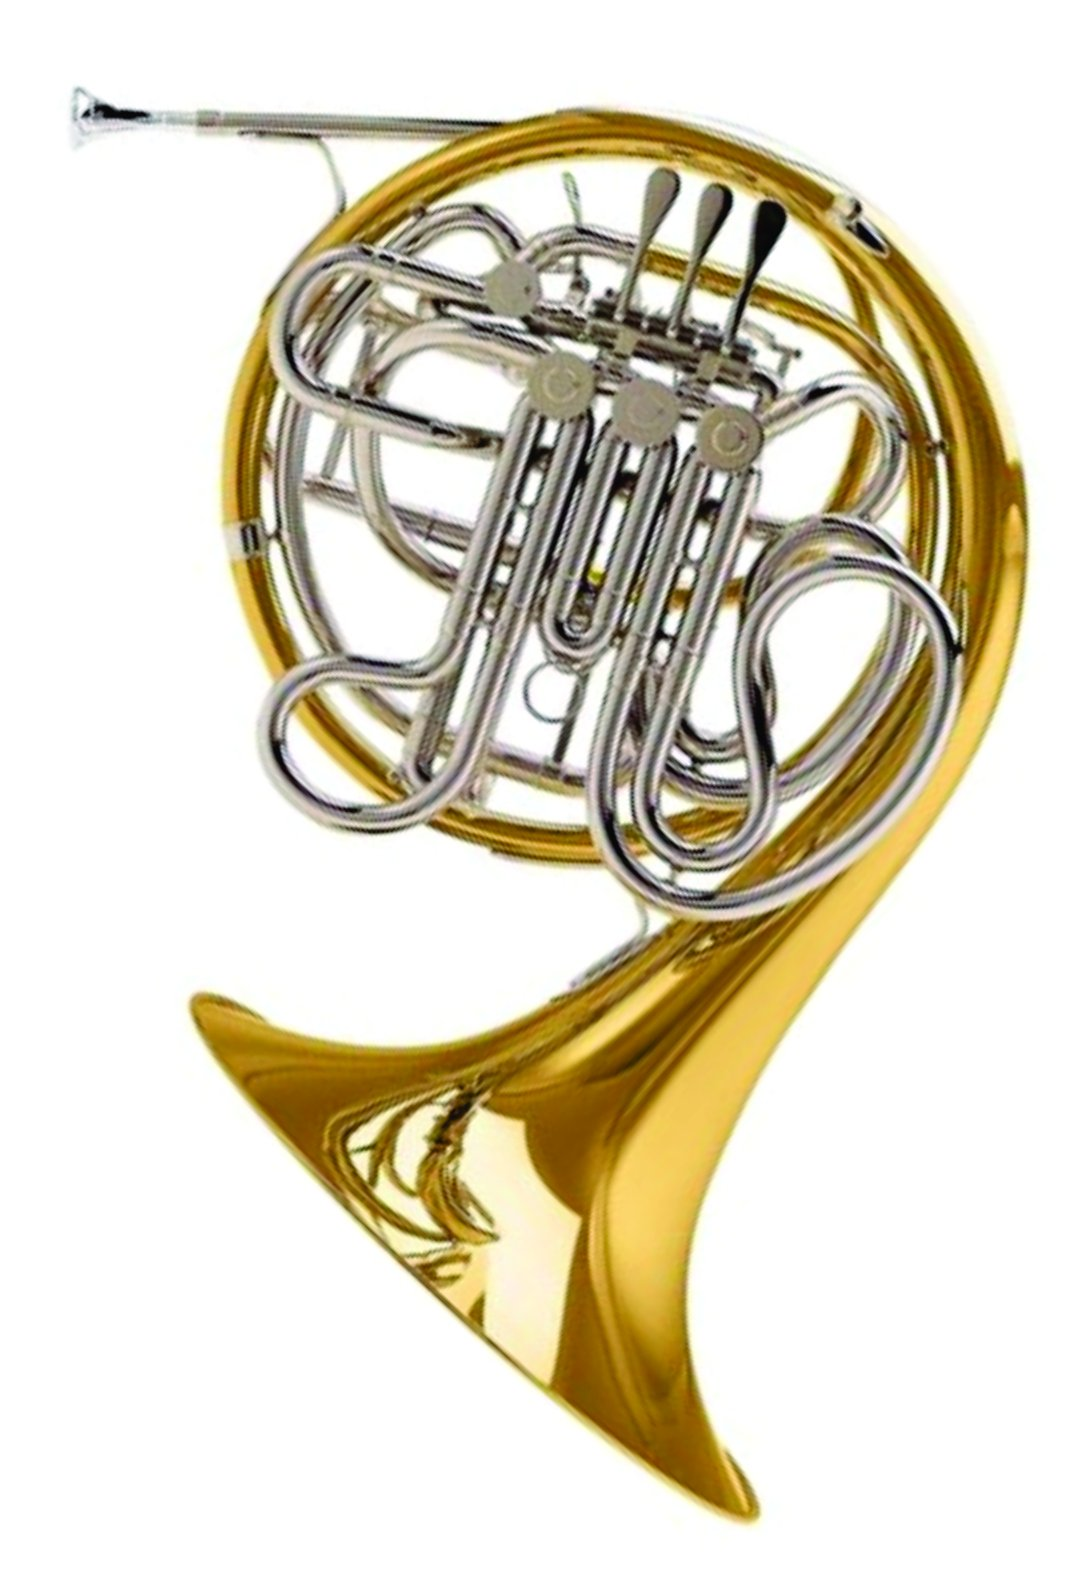 CONN 9D Professional Double French Horn